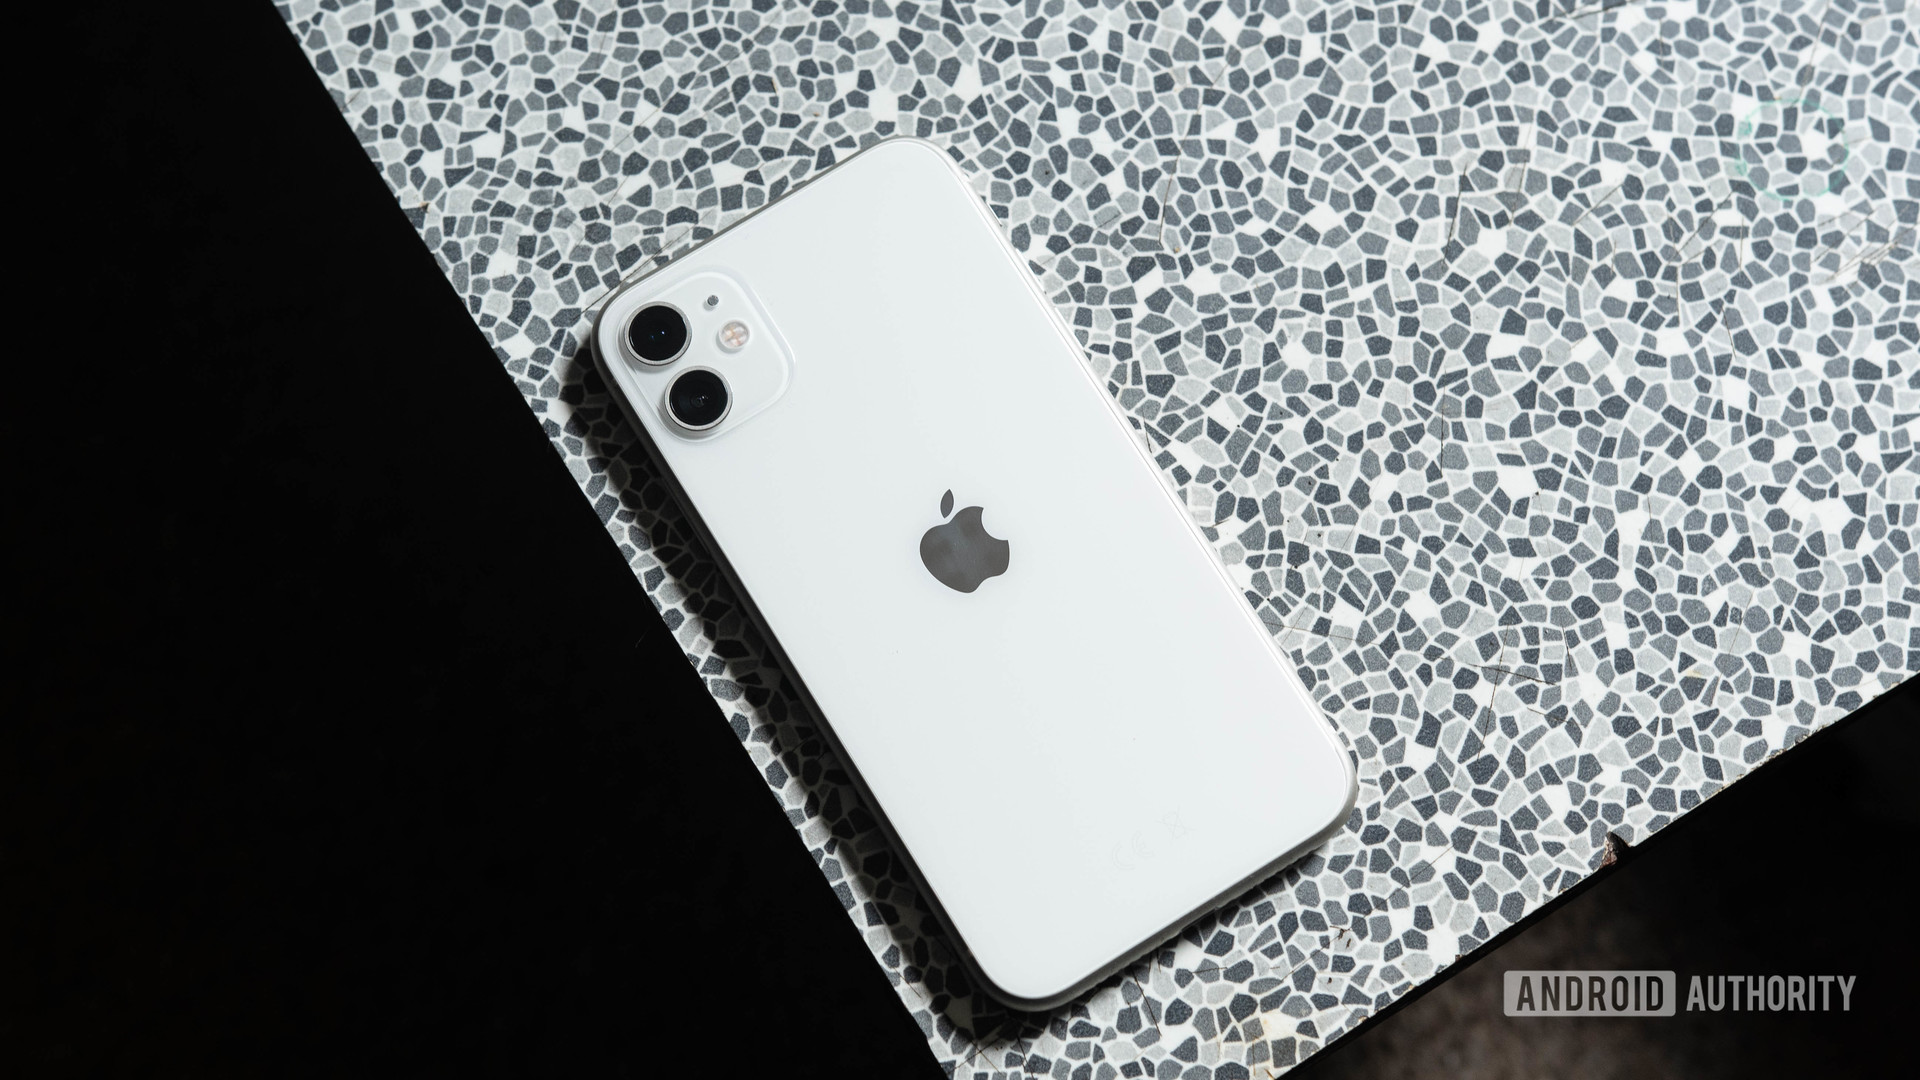 iPhone 11 on a table